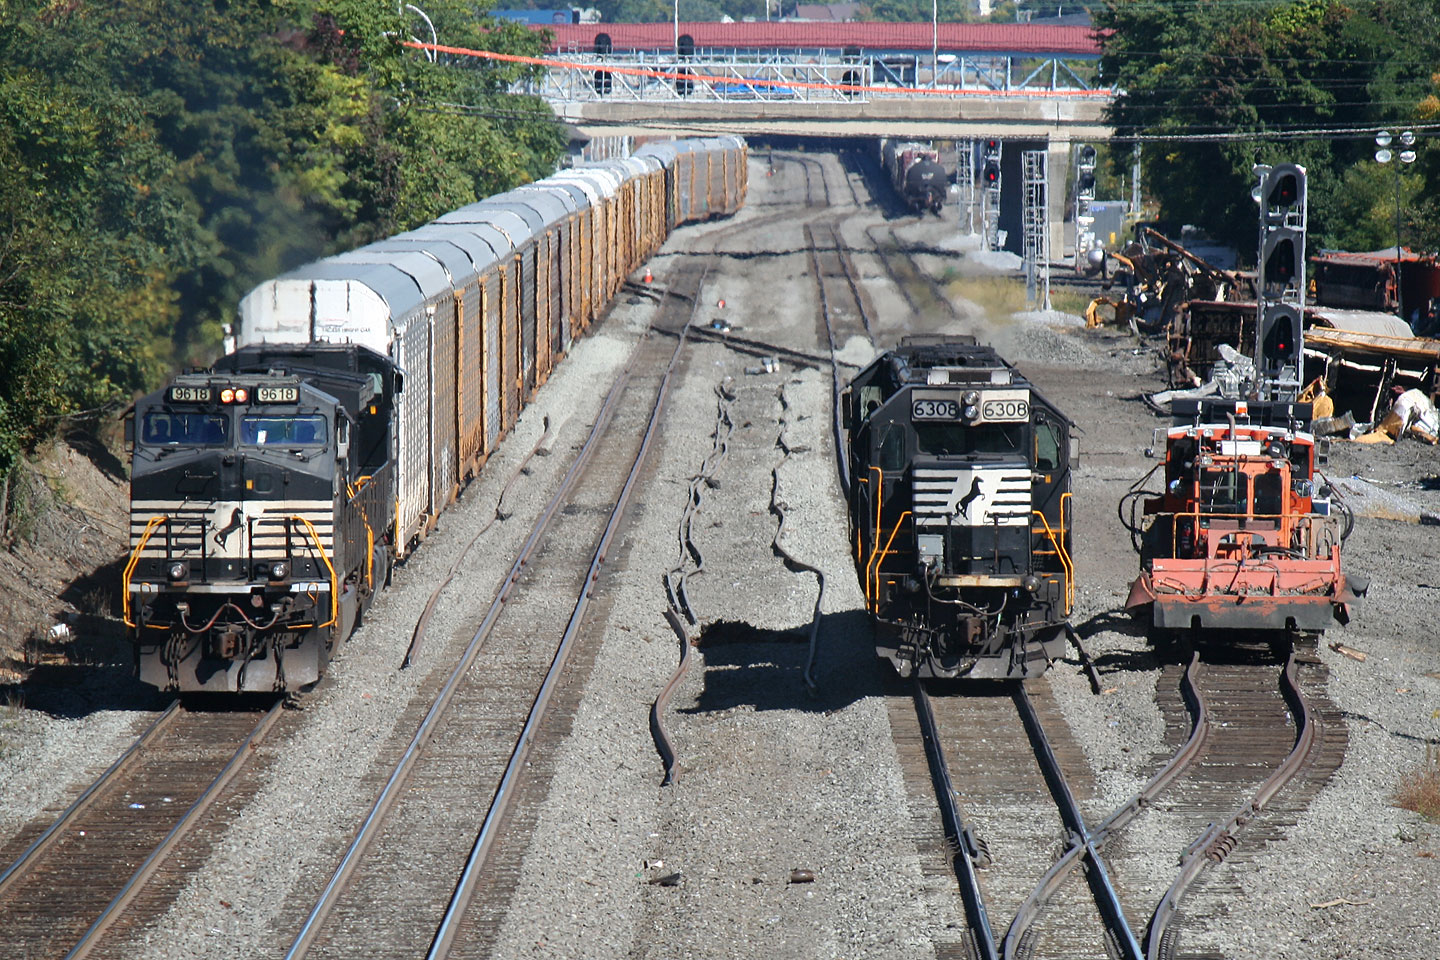 A westbound auto rack train rolls through CP Altoona where, just a week previously, a westbound version derailed causing the mess you see in the photo.